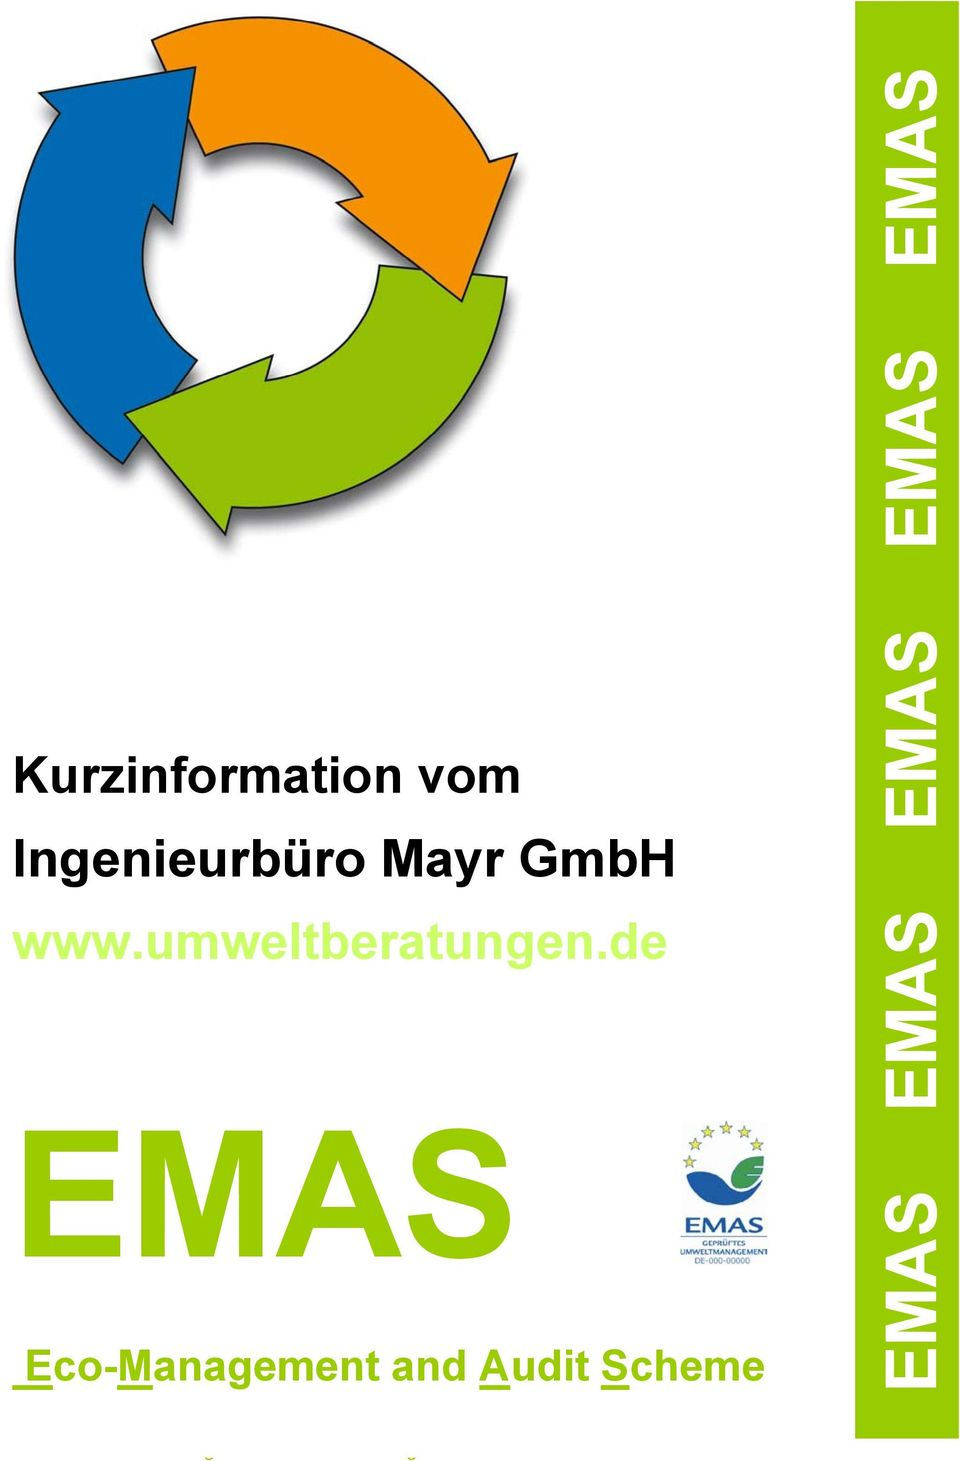 de EMAS Eco-Management and Audit Scheme EMAS